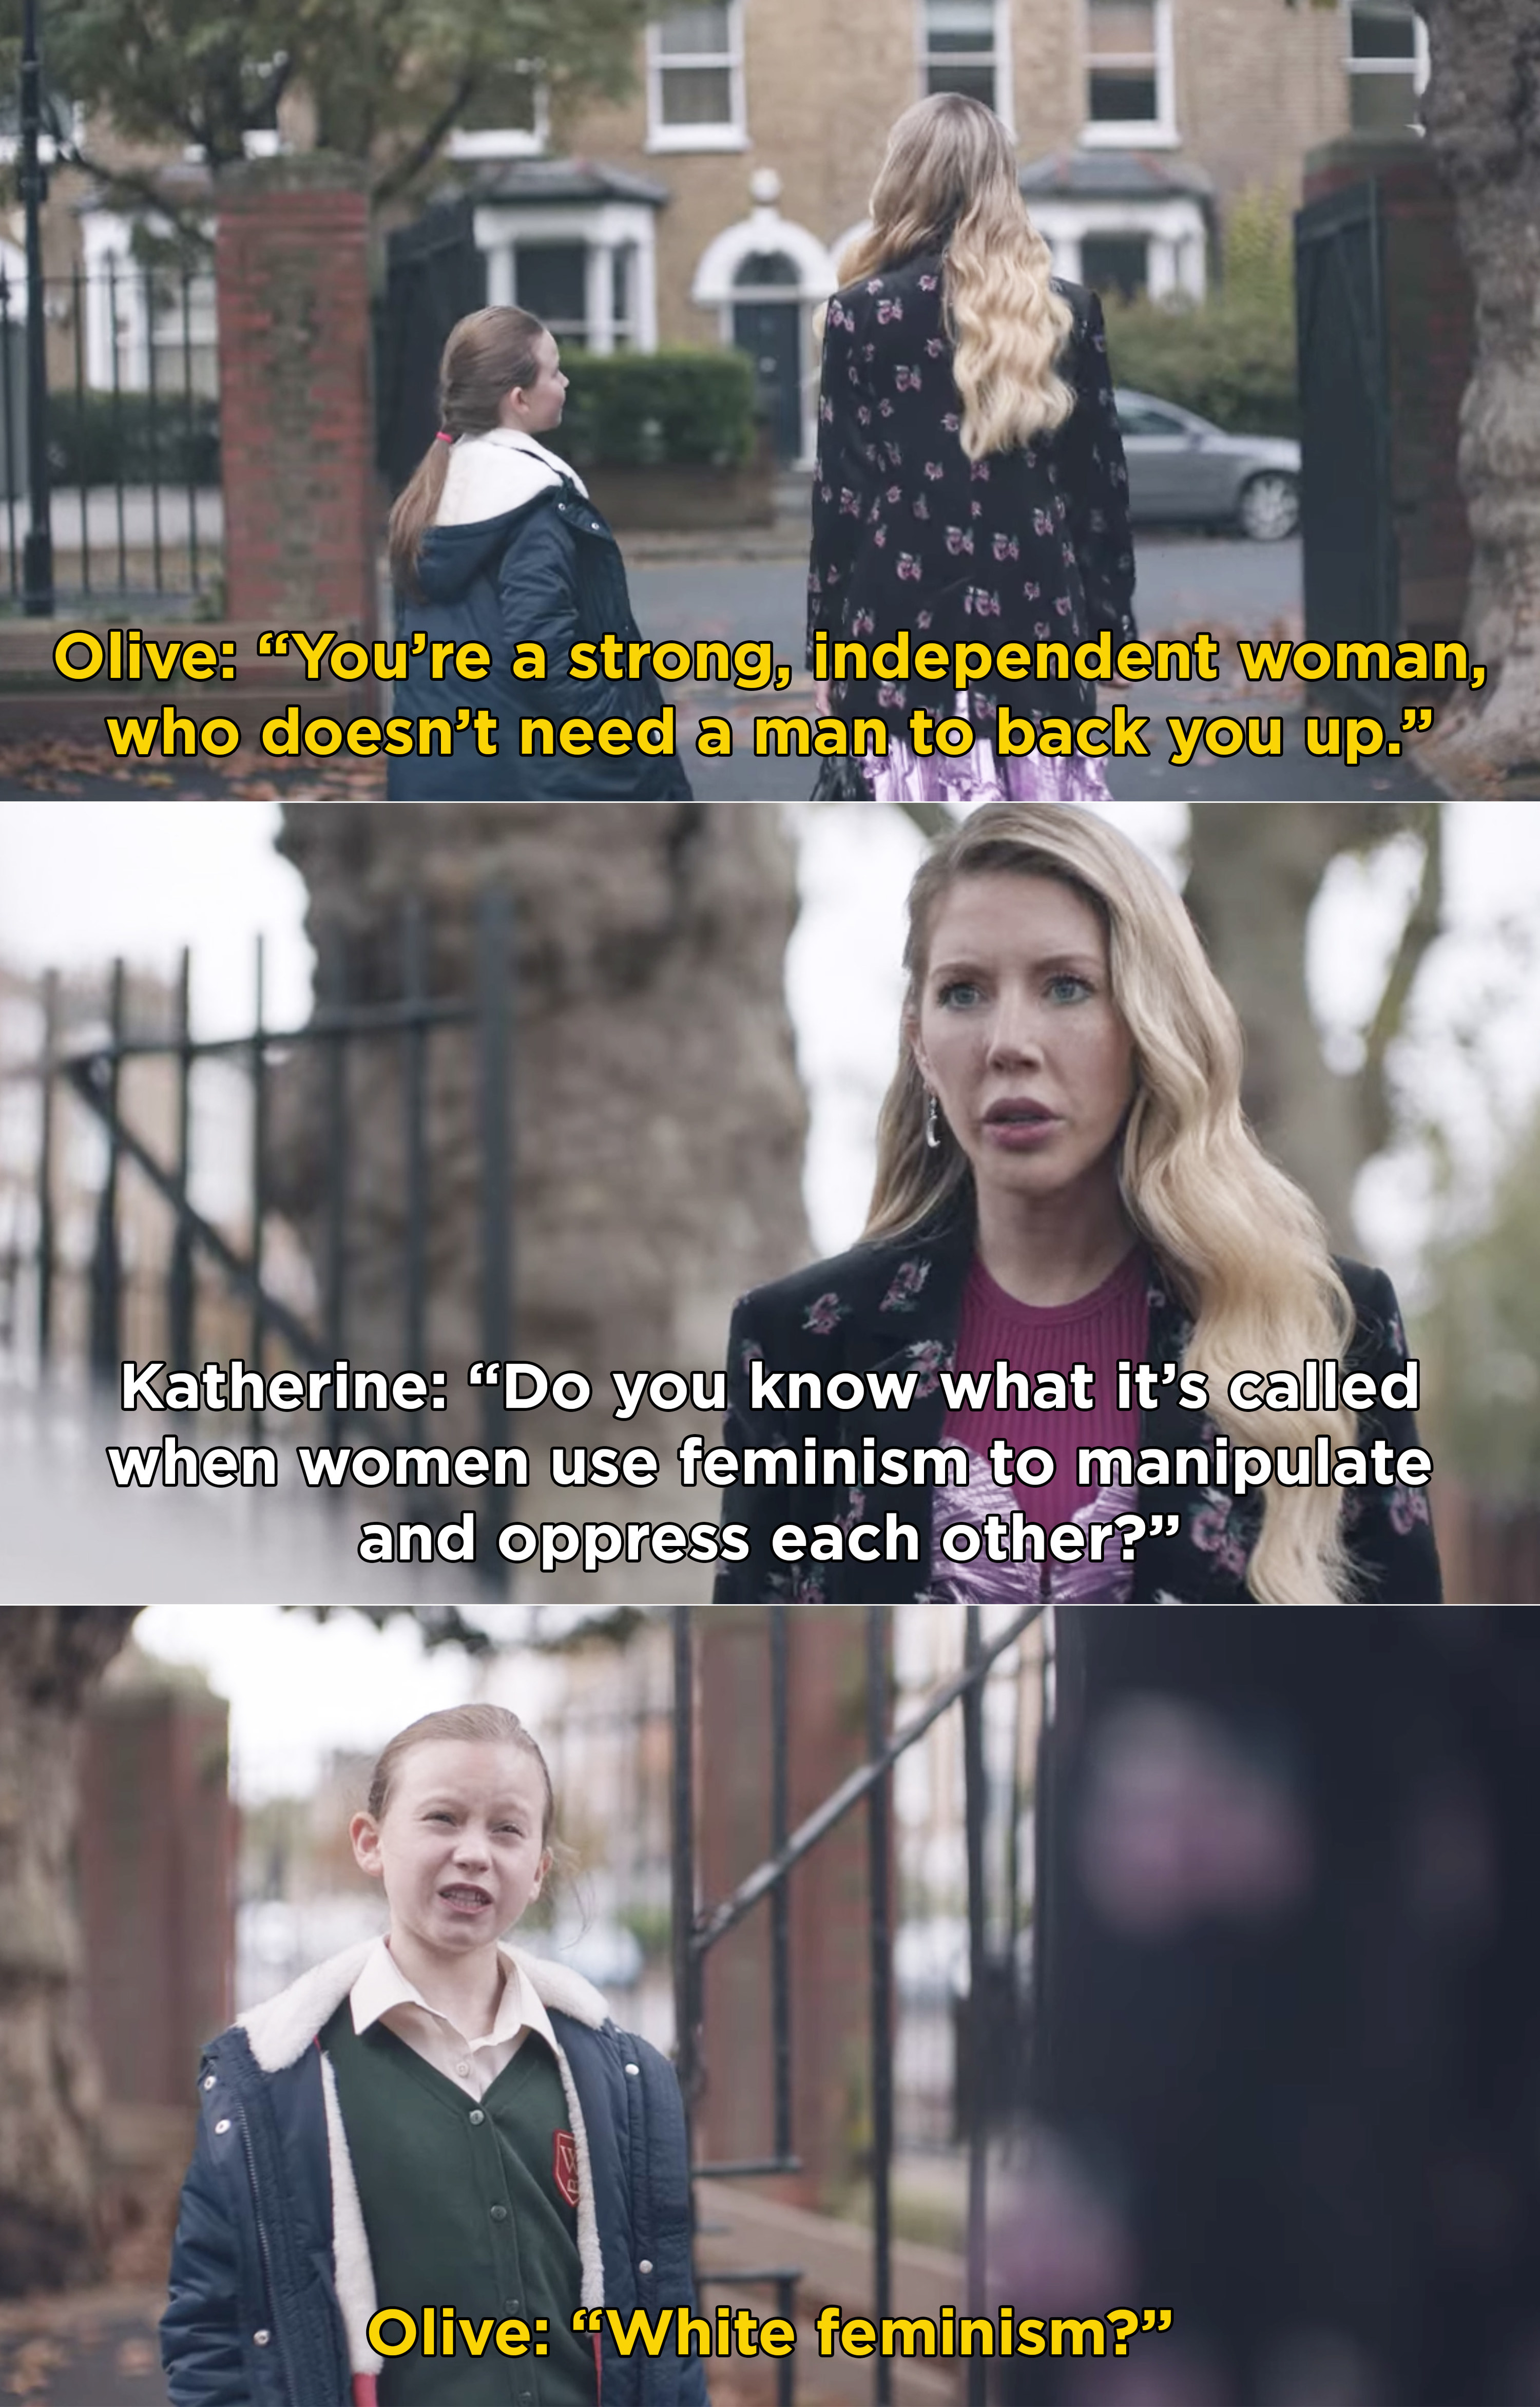 """Katherine asking Olive what it's called when women use feminism to manipulate each other, and Olive responding, """"White feminism?"""""""